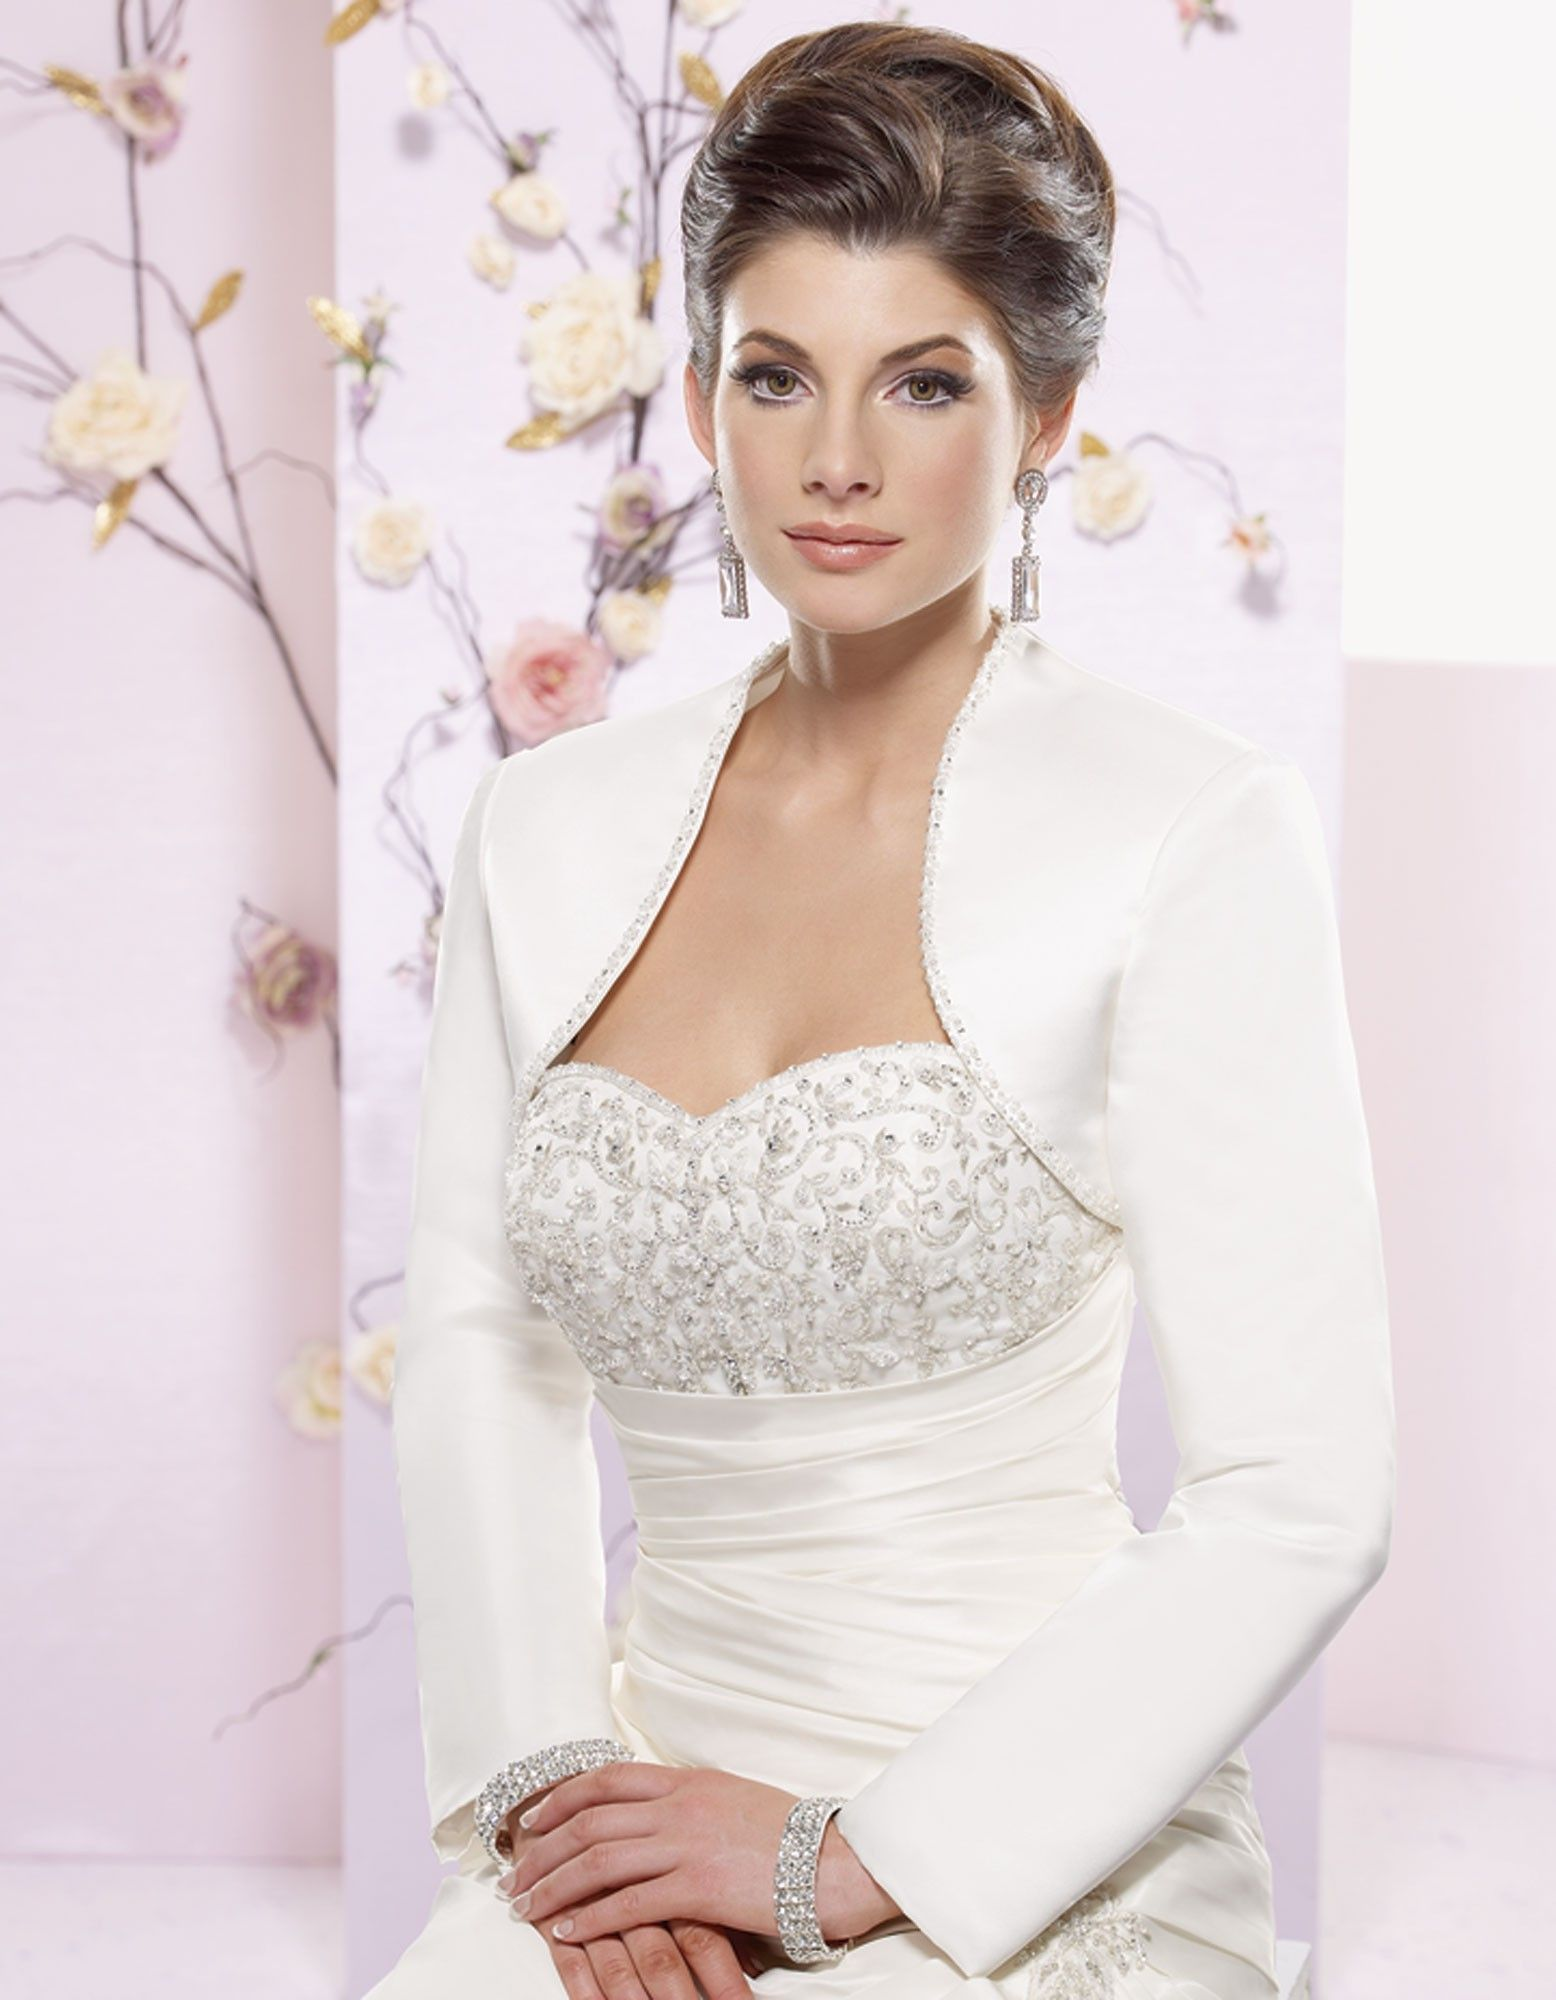 Dress with jacket for wedding  Charming long sleeve wedding dress jacket  a   Dream